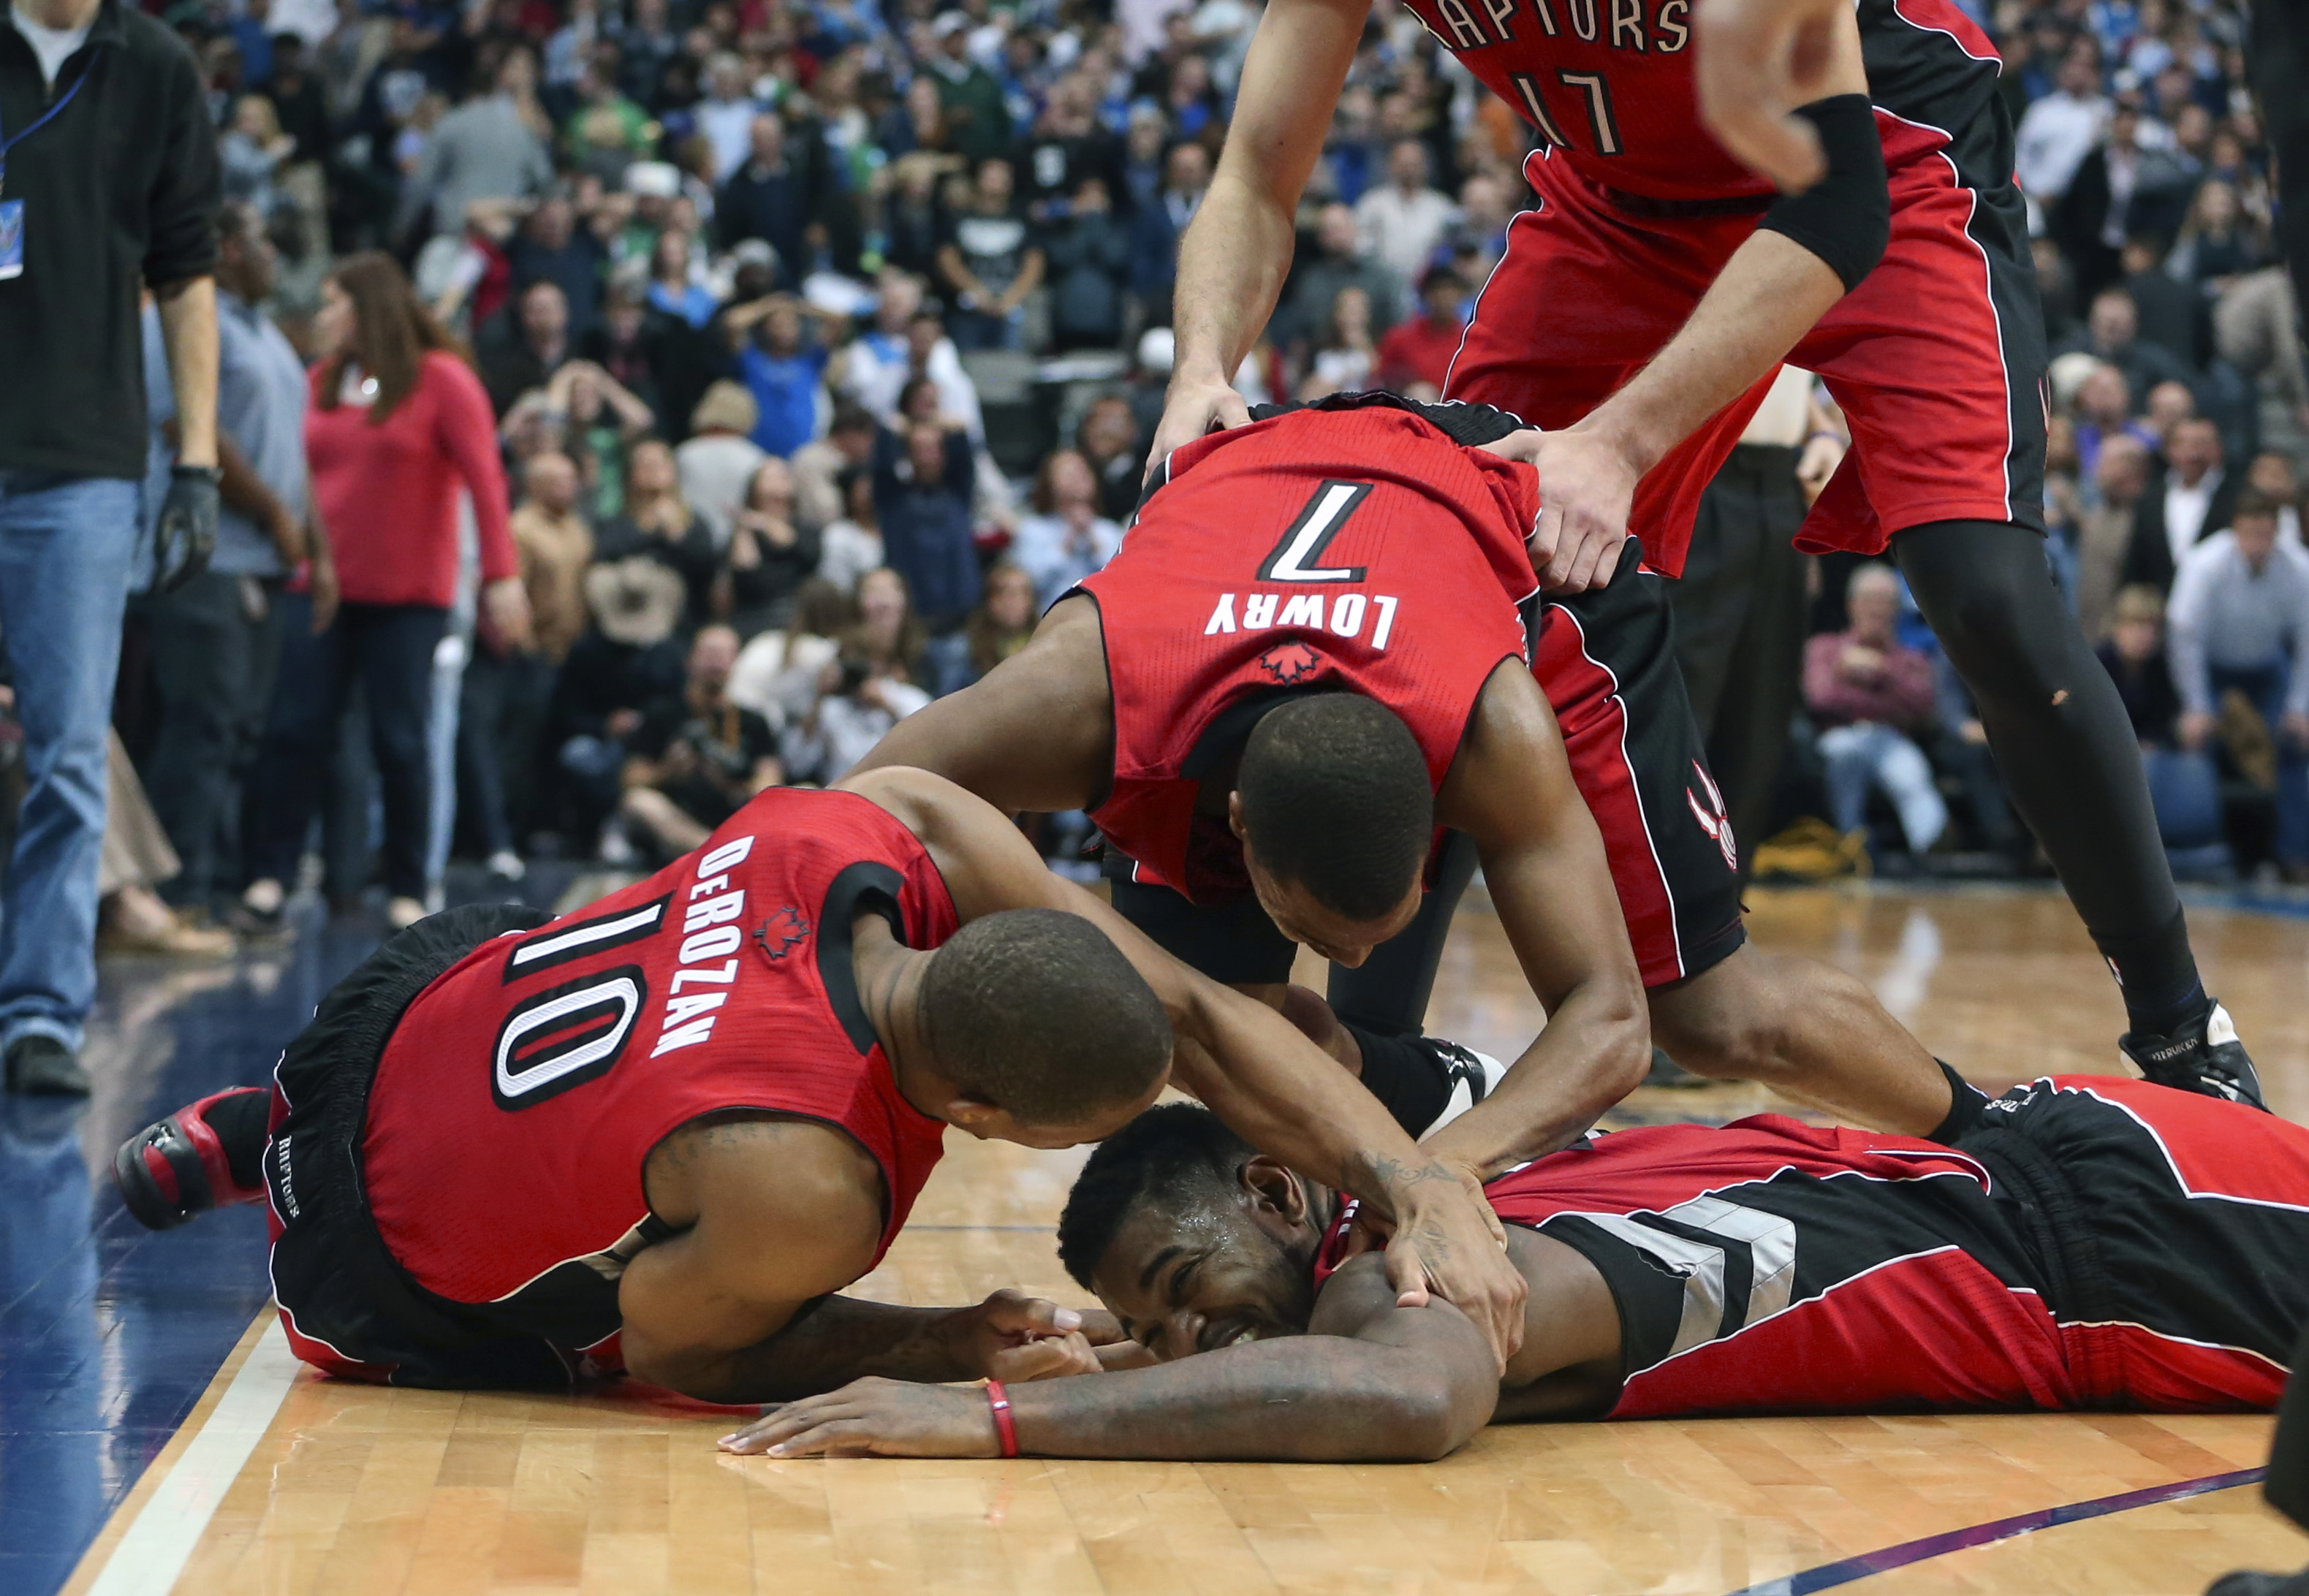 Dec 20, 2013; Dallas, TX, USA; Toronto Raptors power forward Amir Johnson (bottom) celebrates with point guard Kyle Lowry (7) and shooting guard DeMar DeRozan (10) after defeating the Dallas Mavericks in overtime at American Airlines Center. Mandatory Credit: Kevin Jairaj-USA TODAY Sports